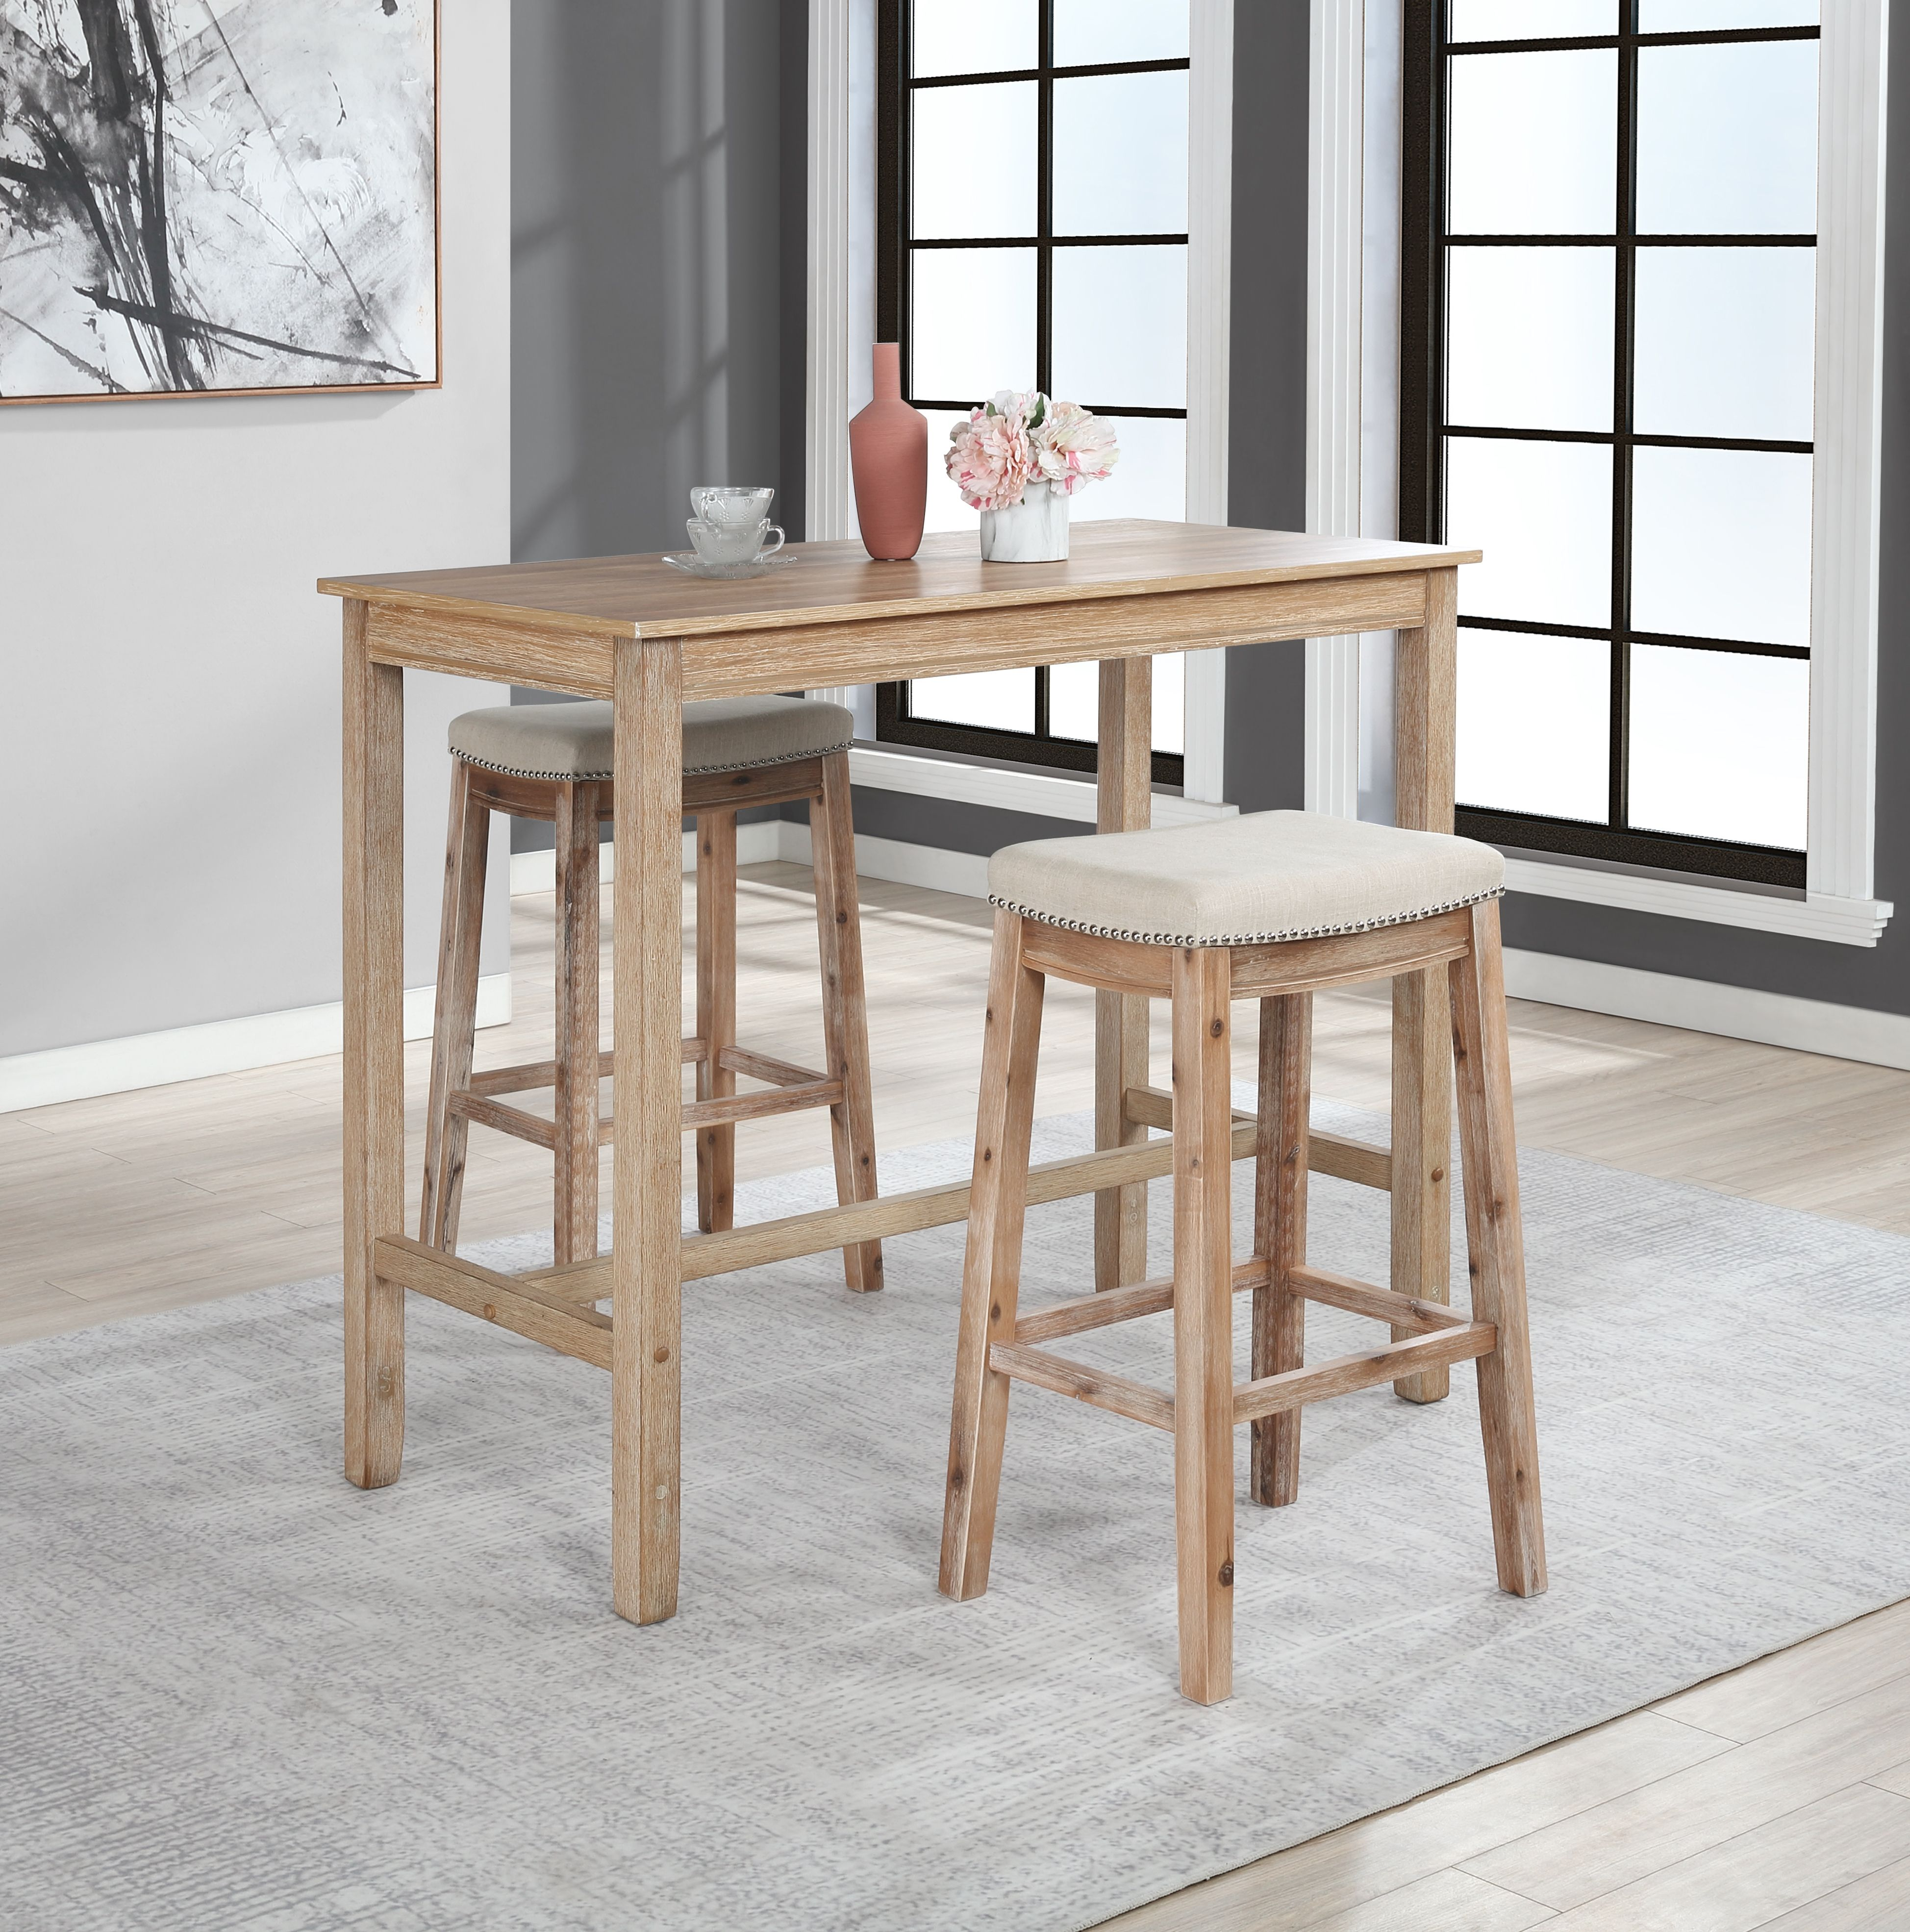 Claridge 42 Inch Bar Height Pub Table Distressed Brown Ashley Furniture Homestore Counter Height Dining Table Counter Height Pub Table Counter Height Dining Sets